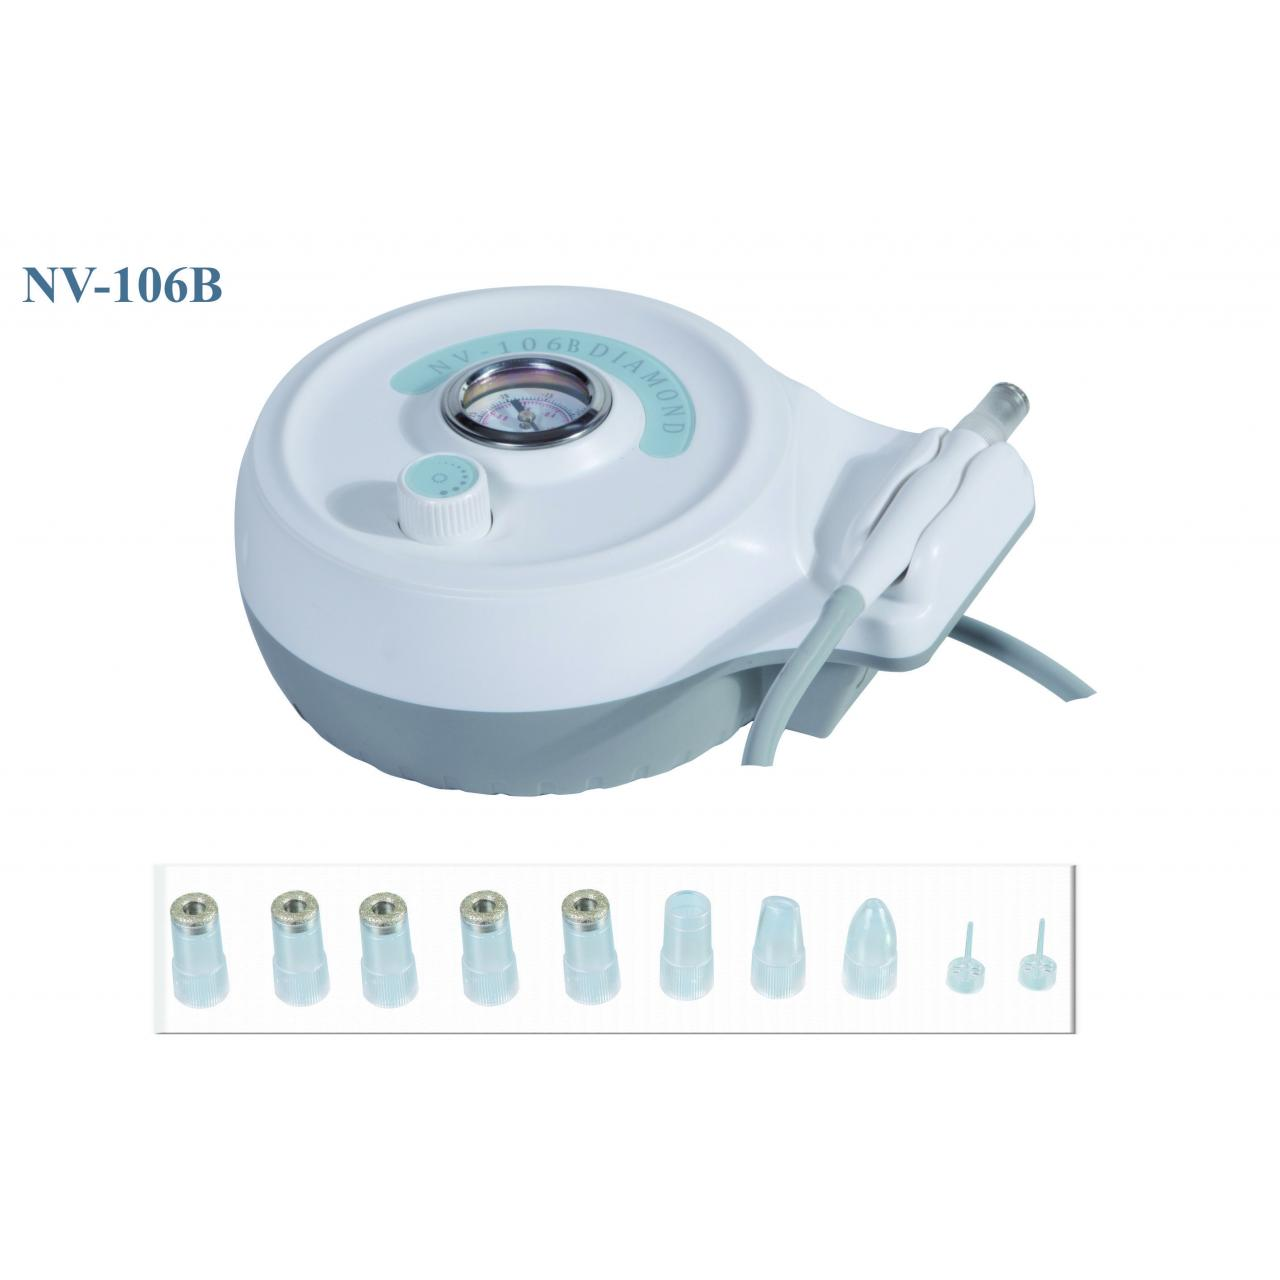 Skin and facial exfoliating, microdermabrasion peeling equipment Manufactures